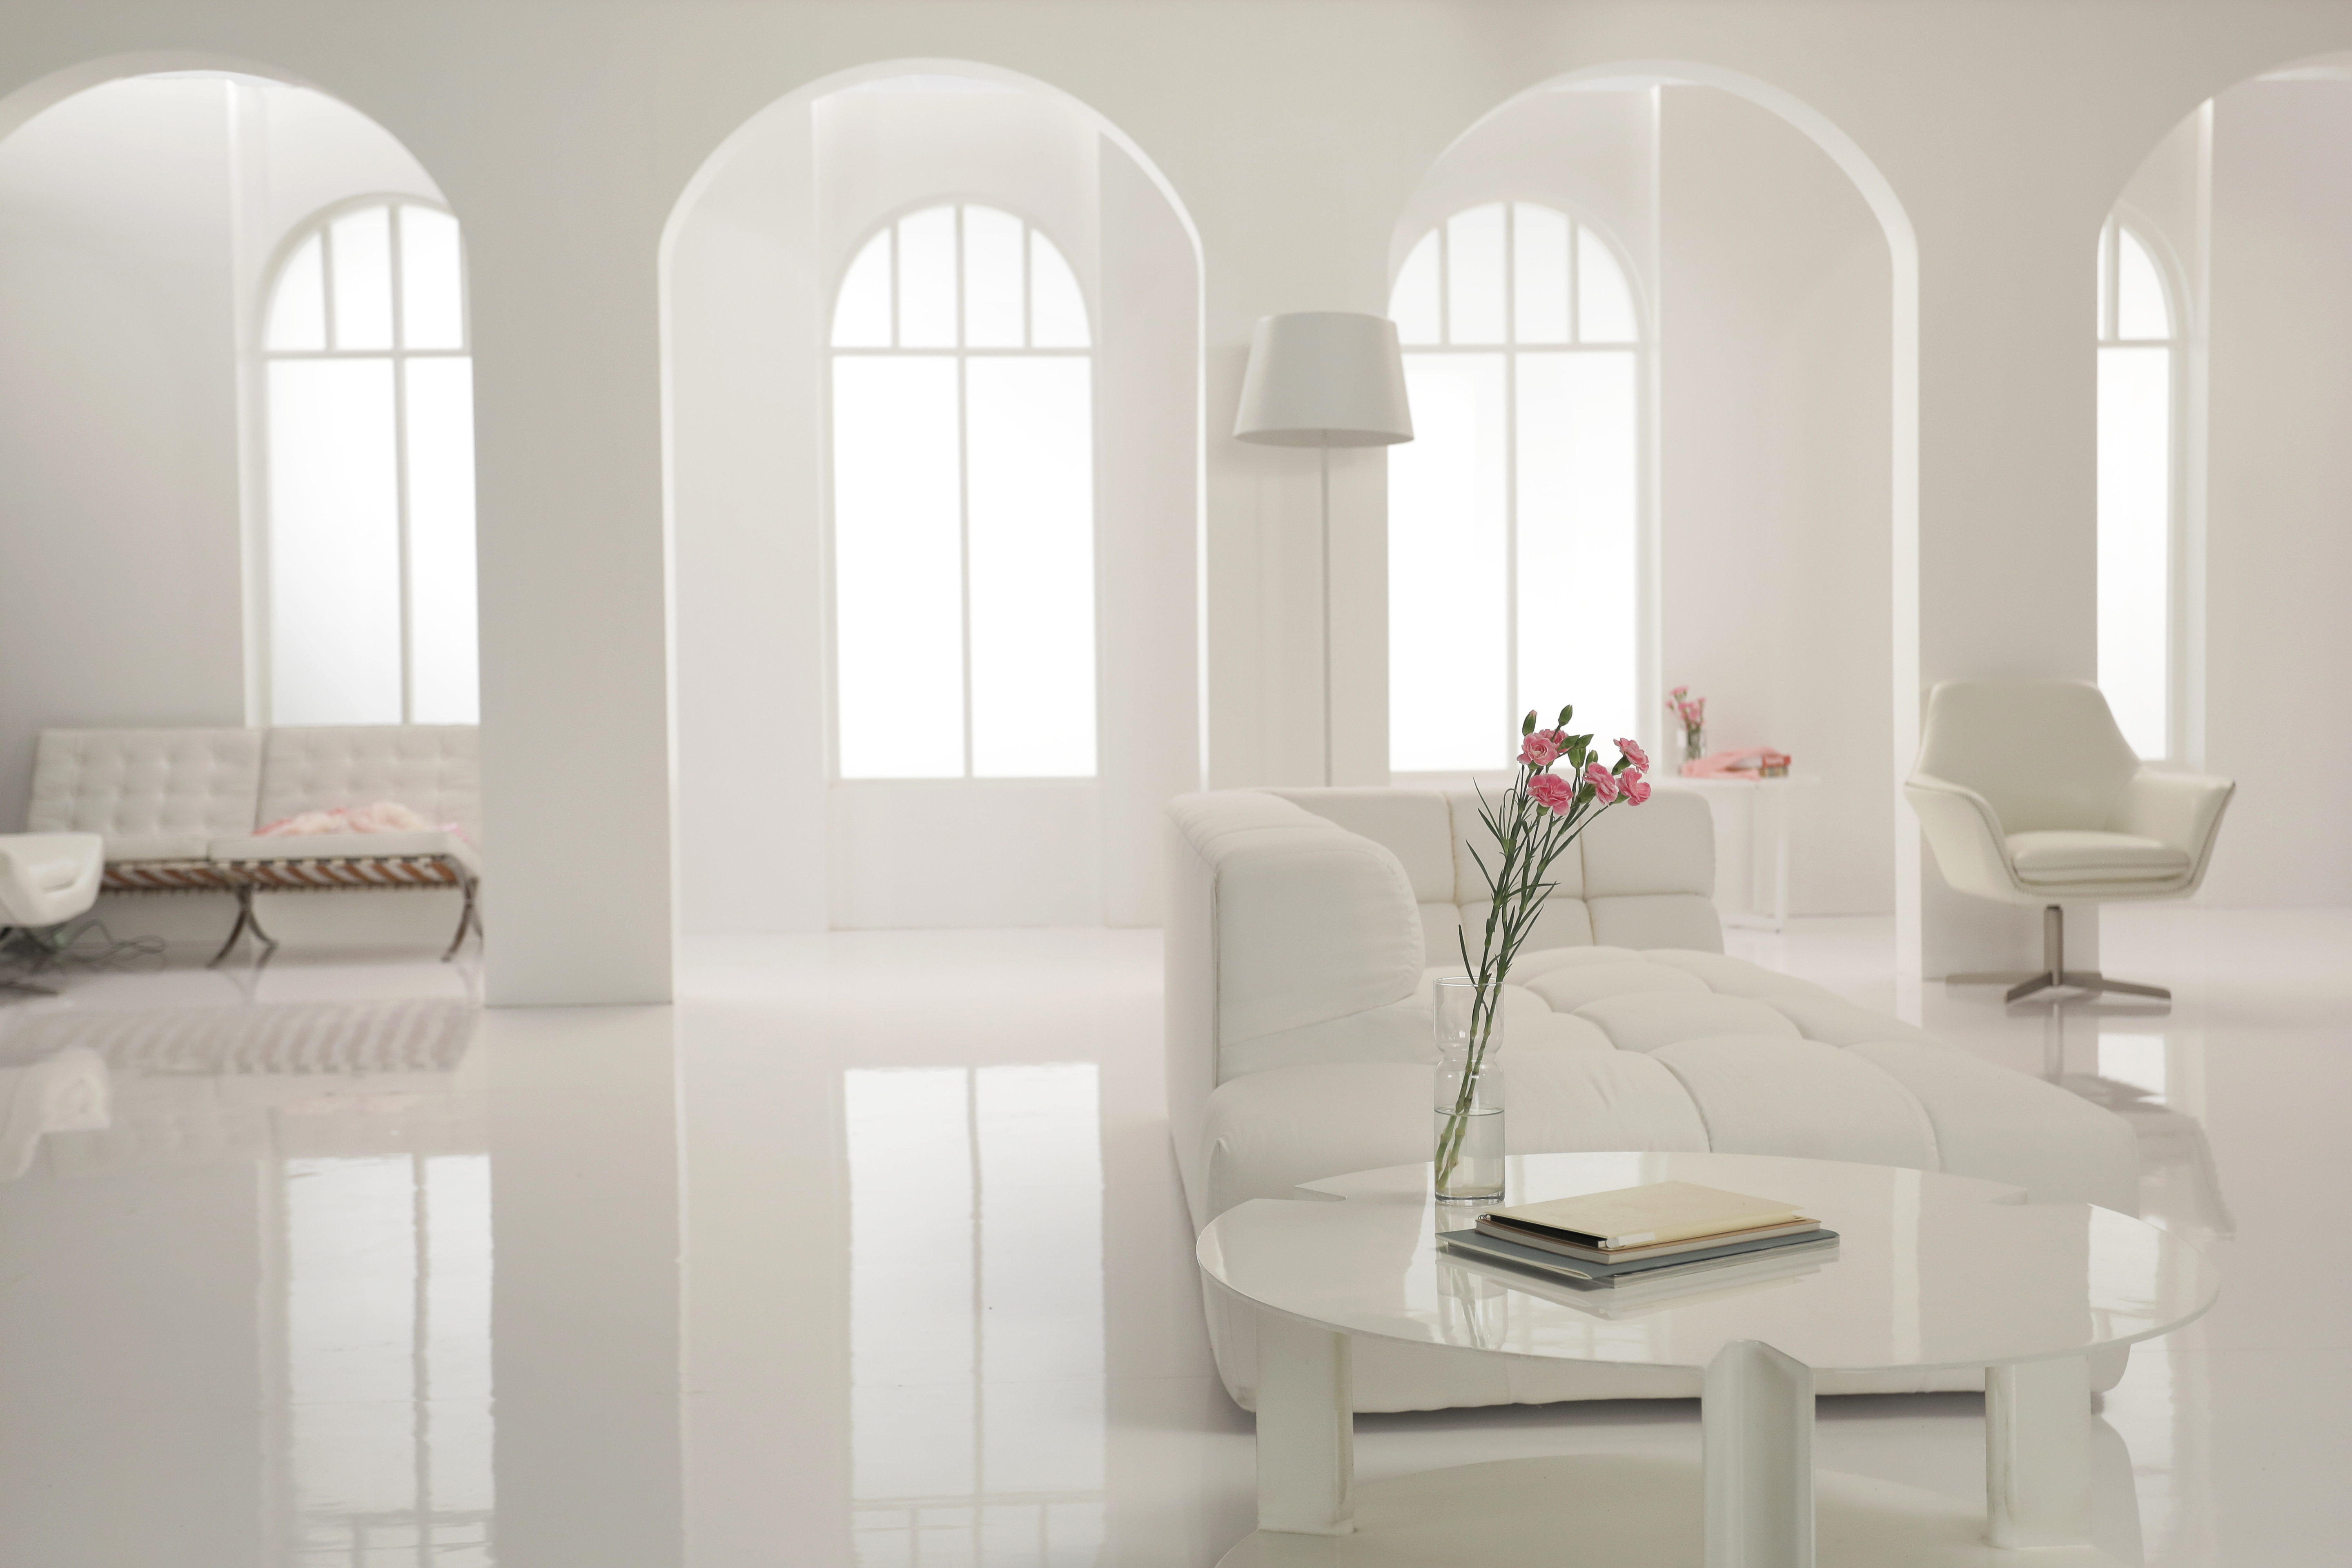 HighGloss mdf panels for mirror effe